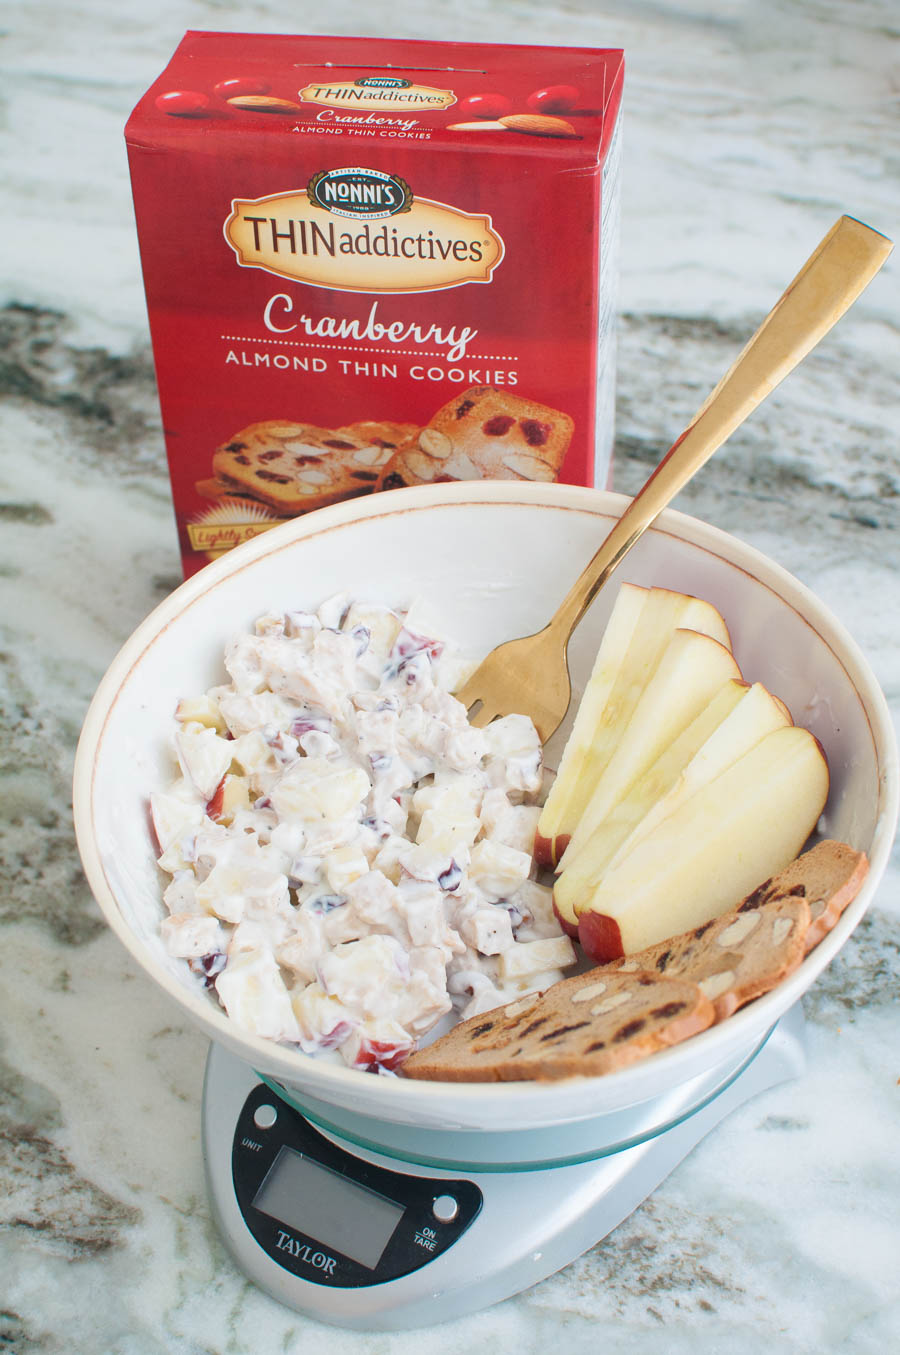 Chicken salad, apples, and Nonni's cranberry thins in a bowl.